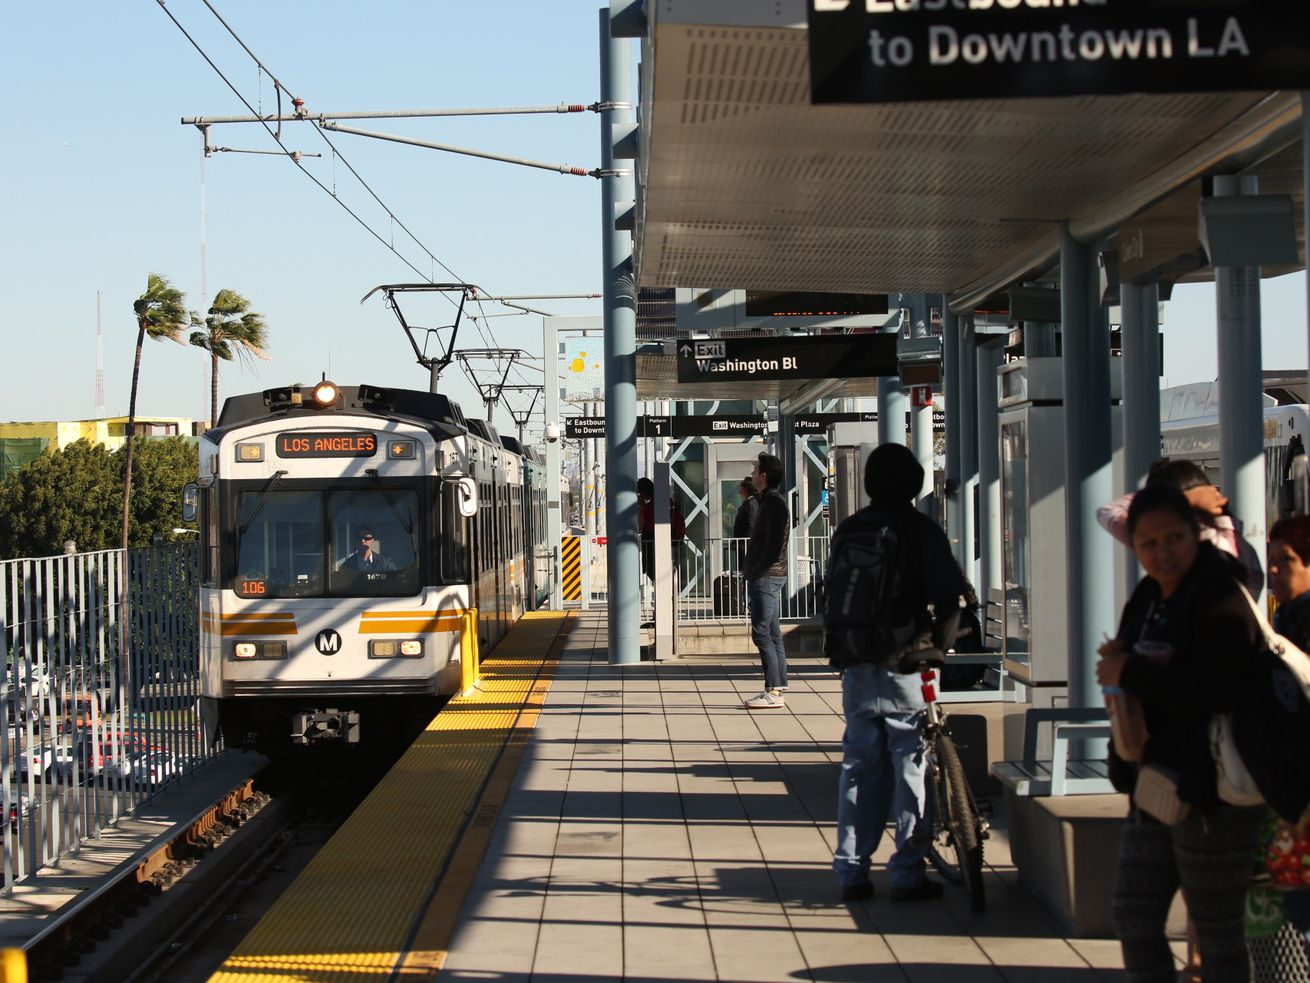 Trains would show up once every eight minutes during rush hour. Gold Line trains now arrive every seven minutes during peak hours, while Expo Line trains come every six minutes